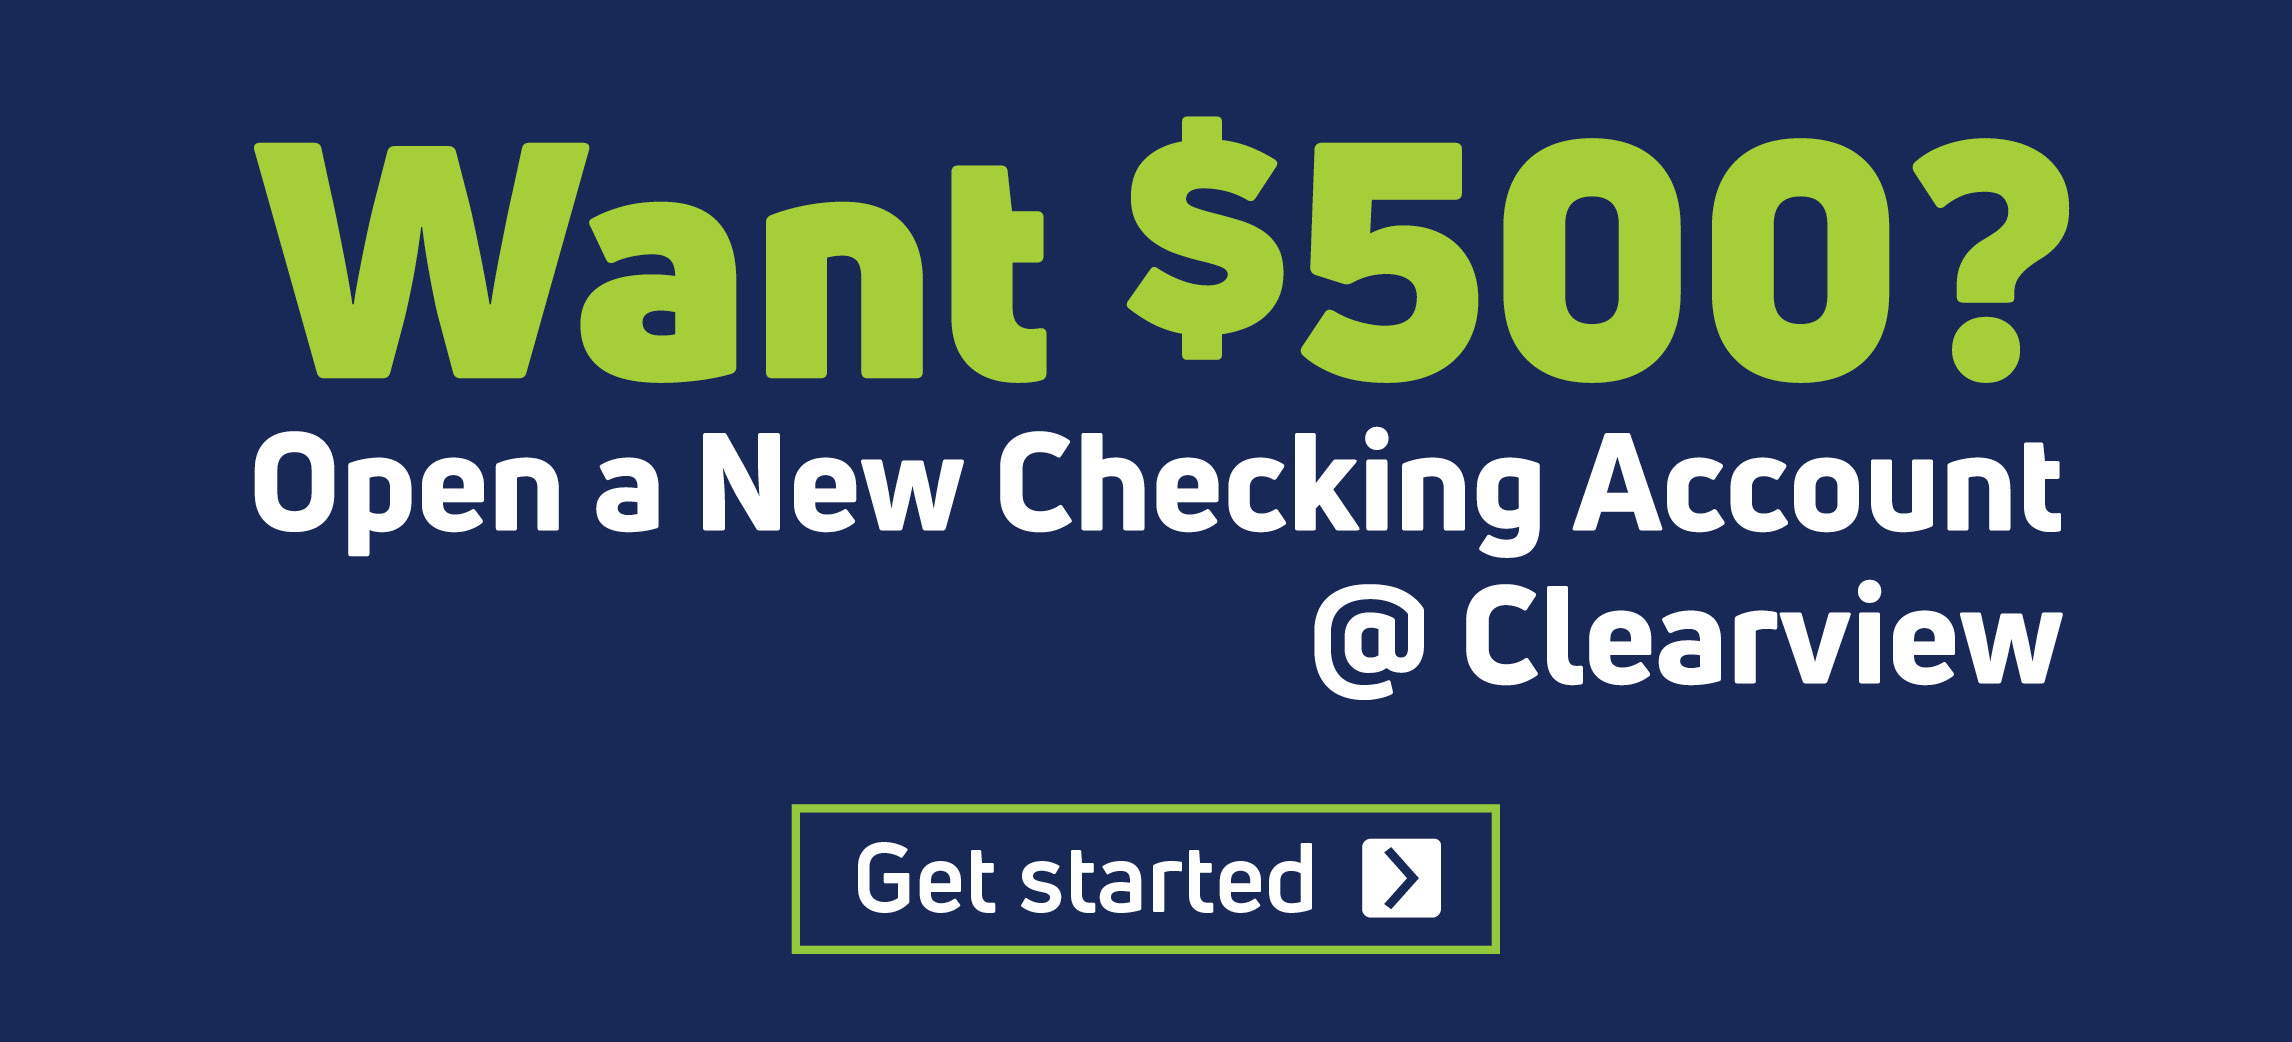 Want $500? Open a New Checking Account @ Clearview. Get Started.